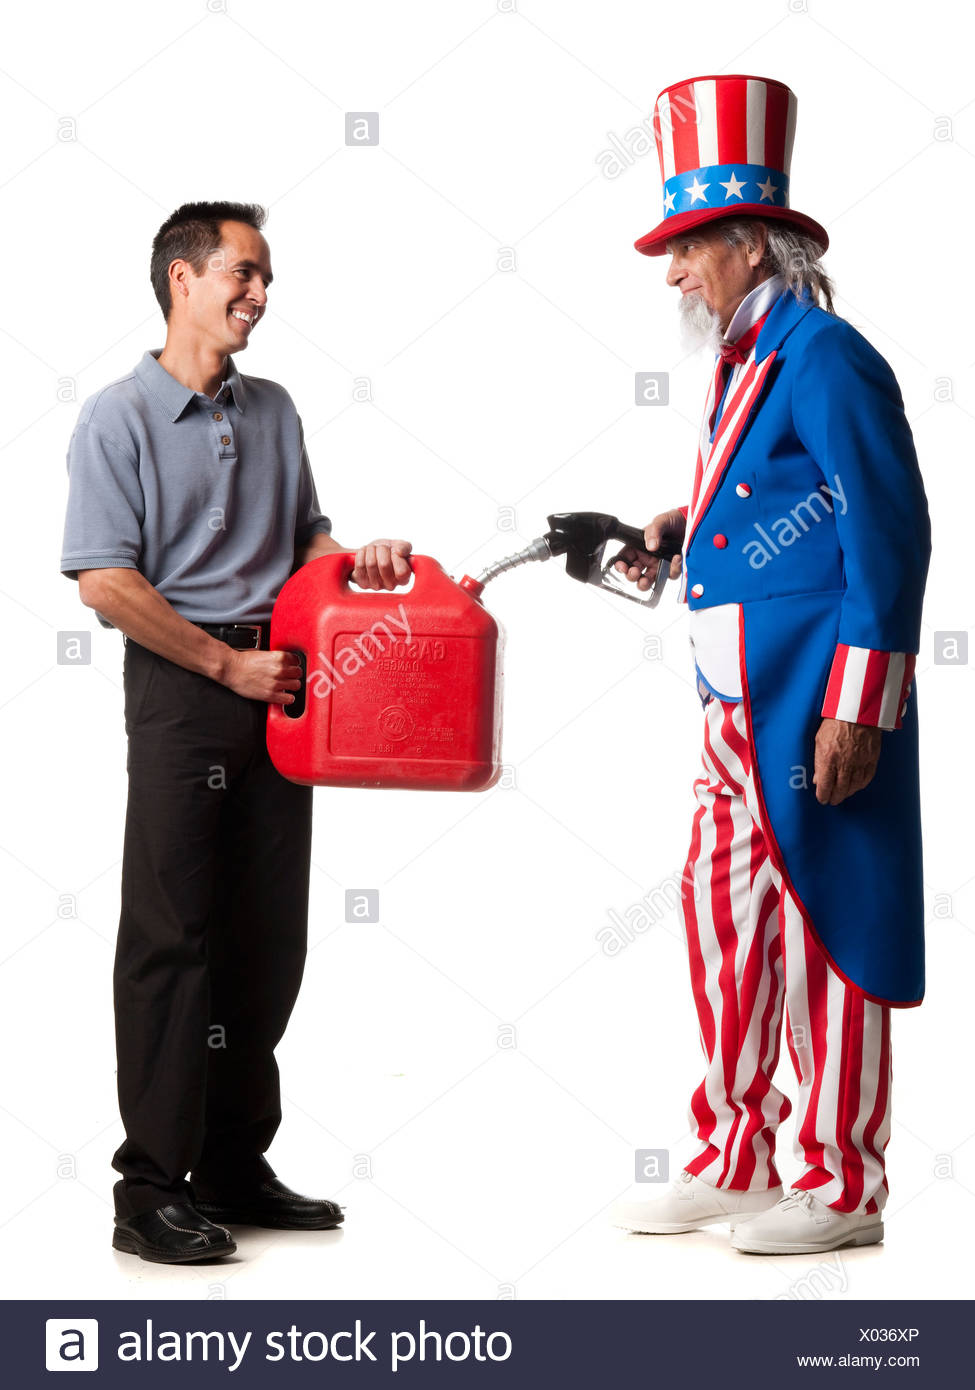 uncle sam holding a gasoline pump filling a man's gas can - Stock Image